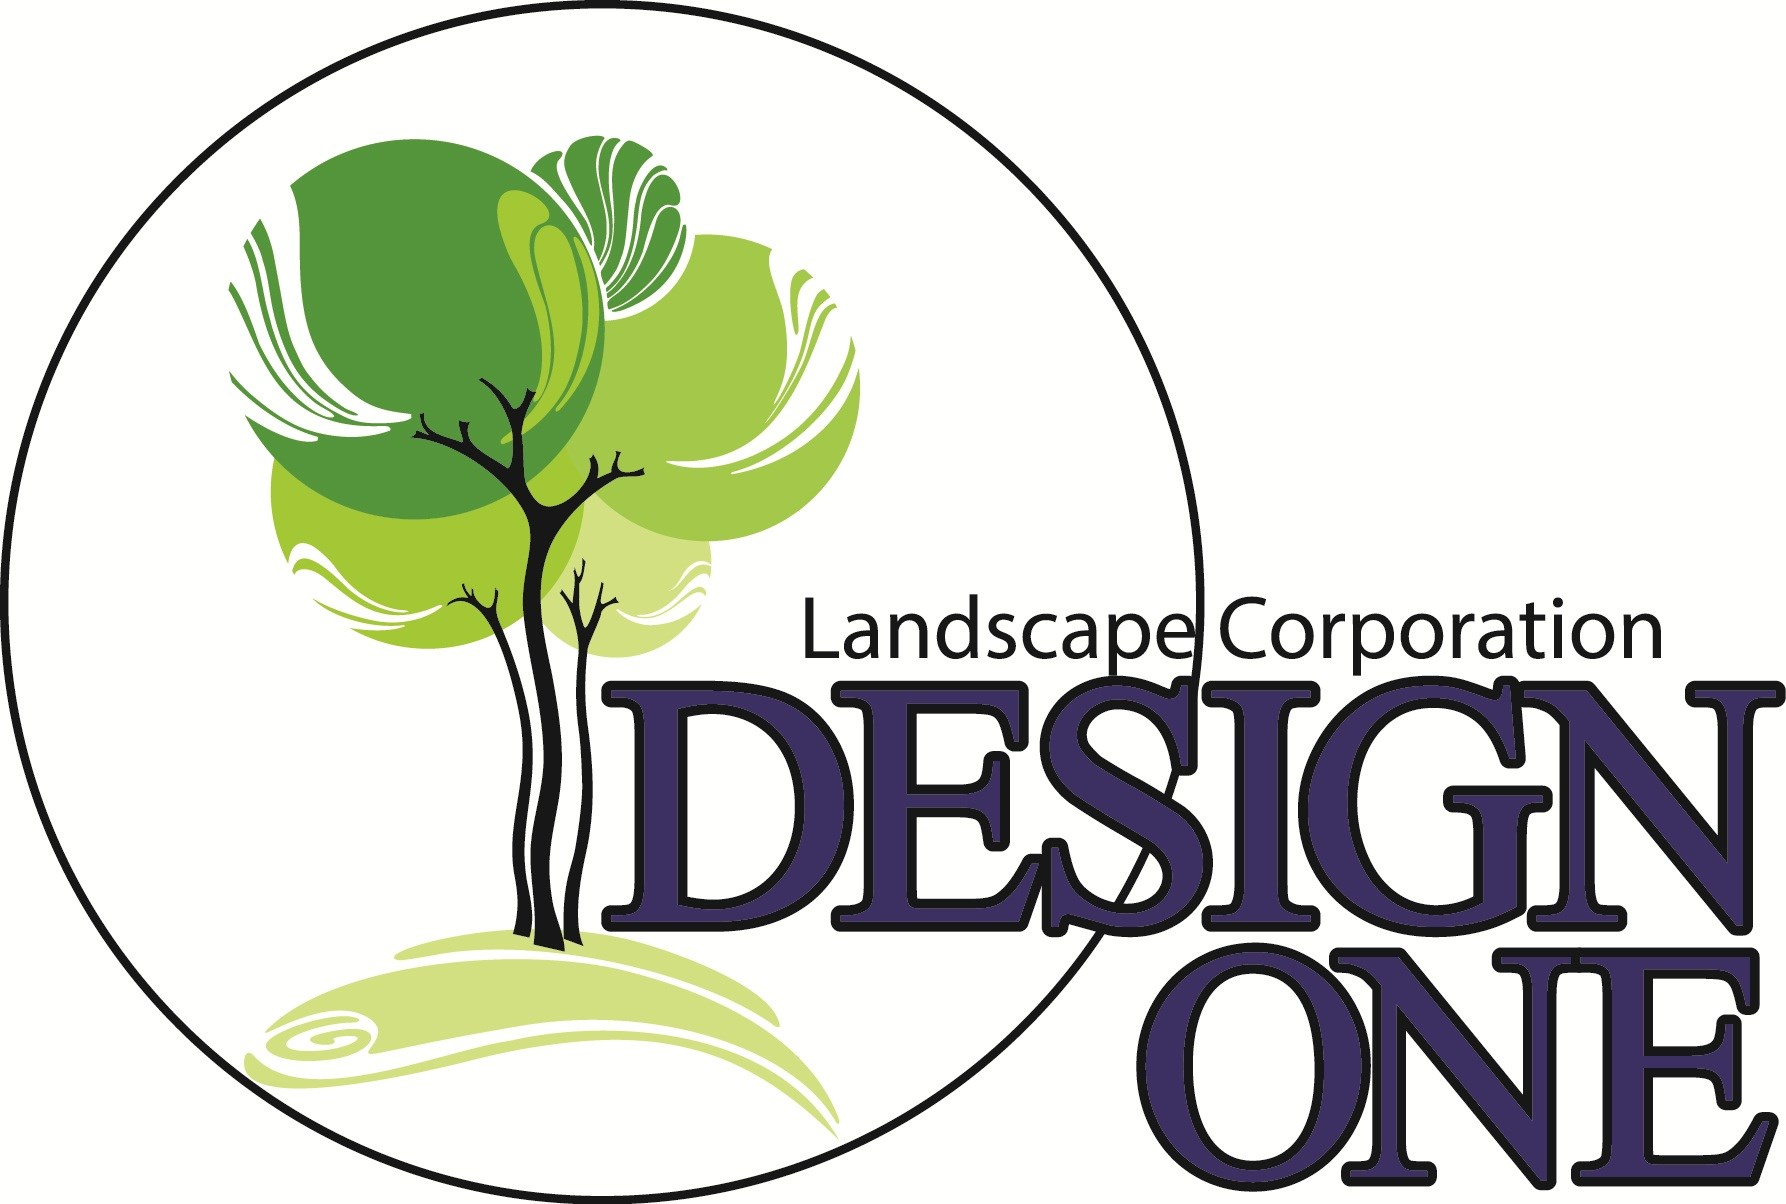 Design One Landscape Services logo